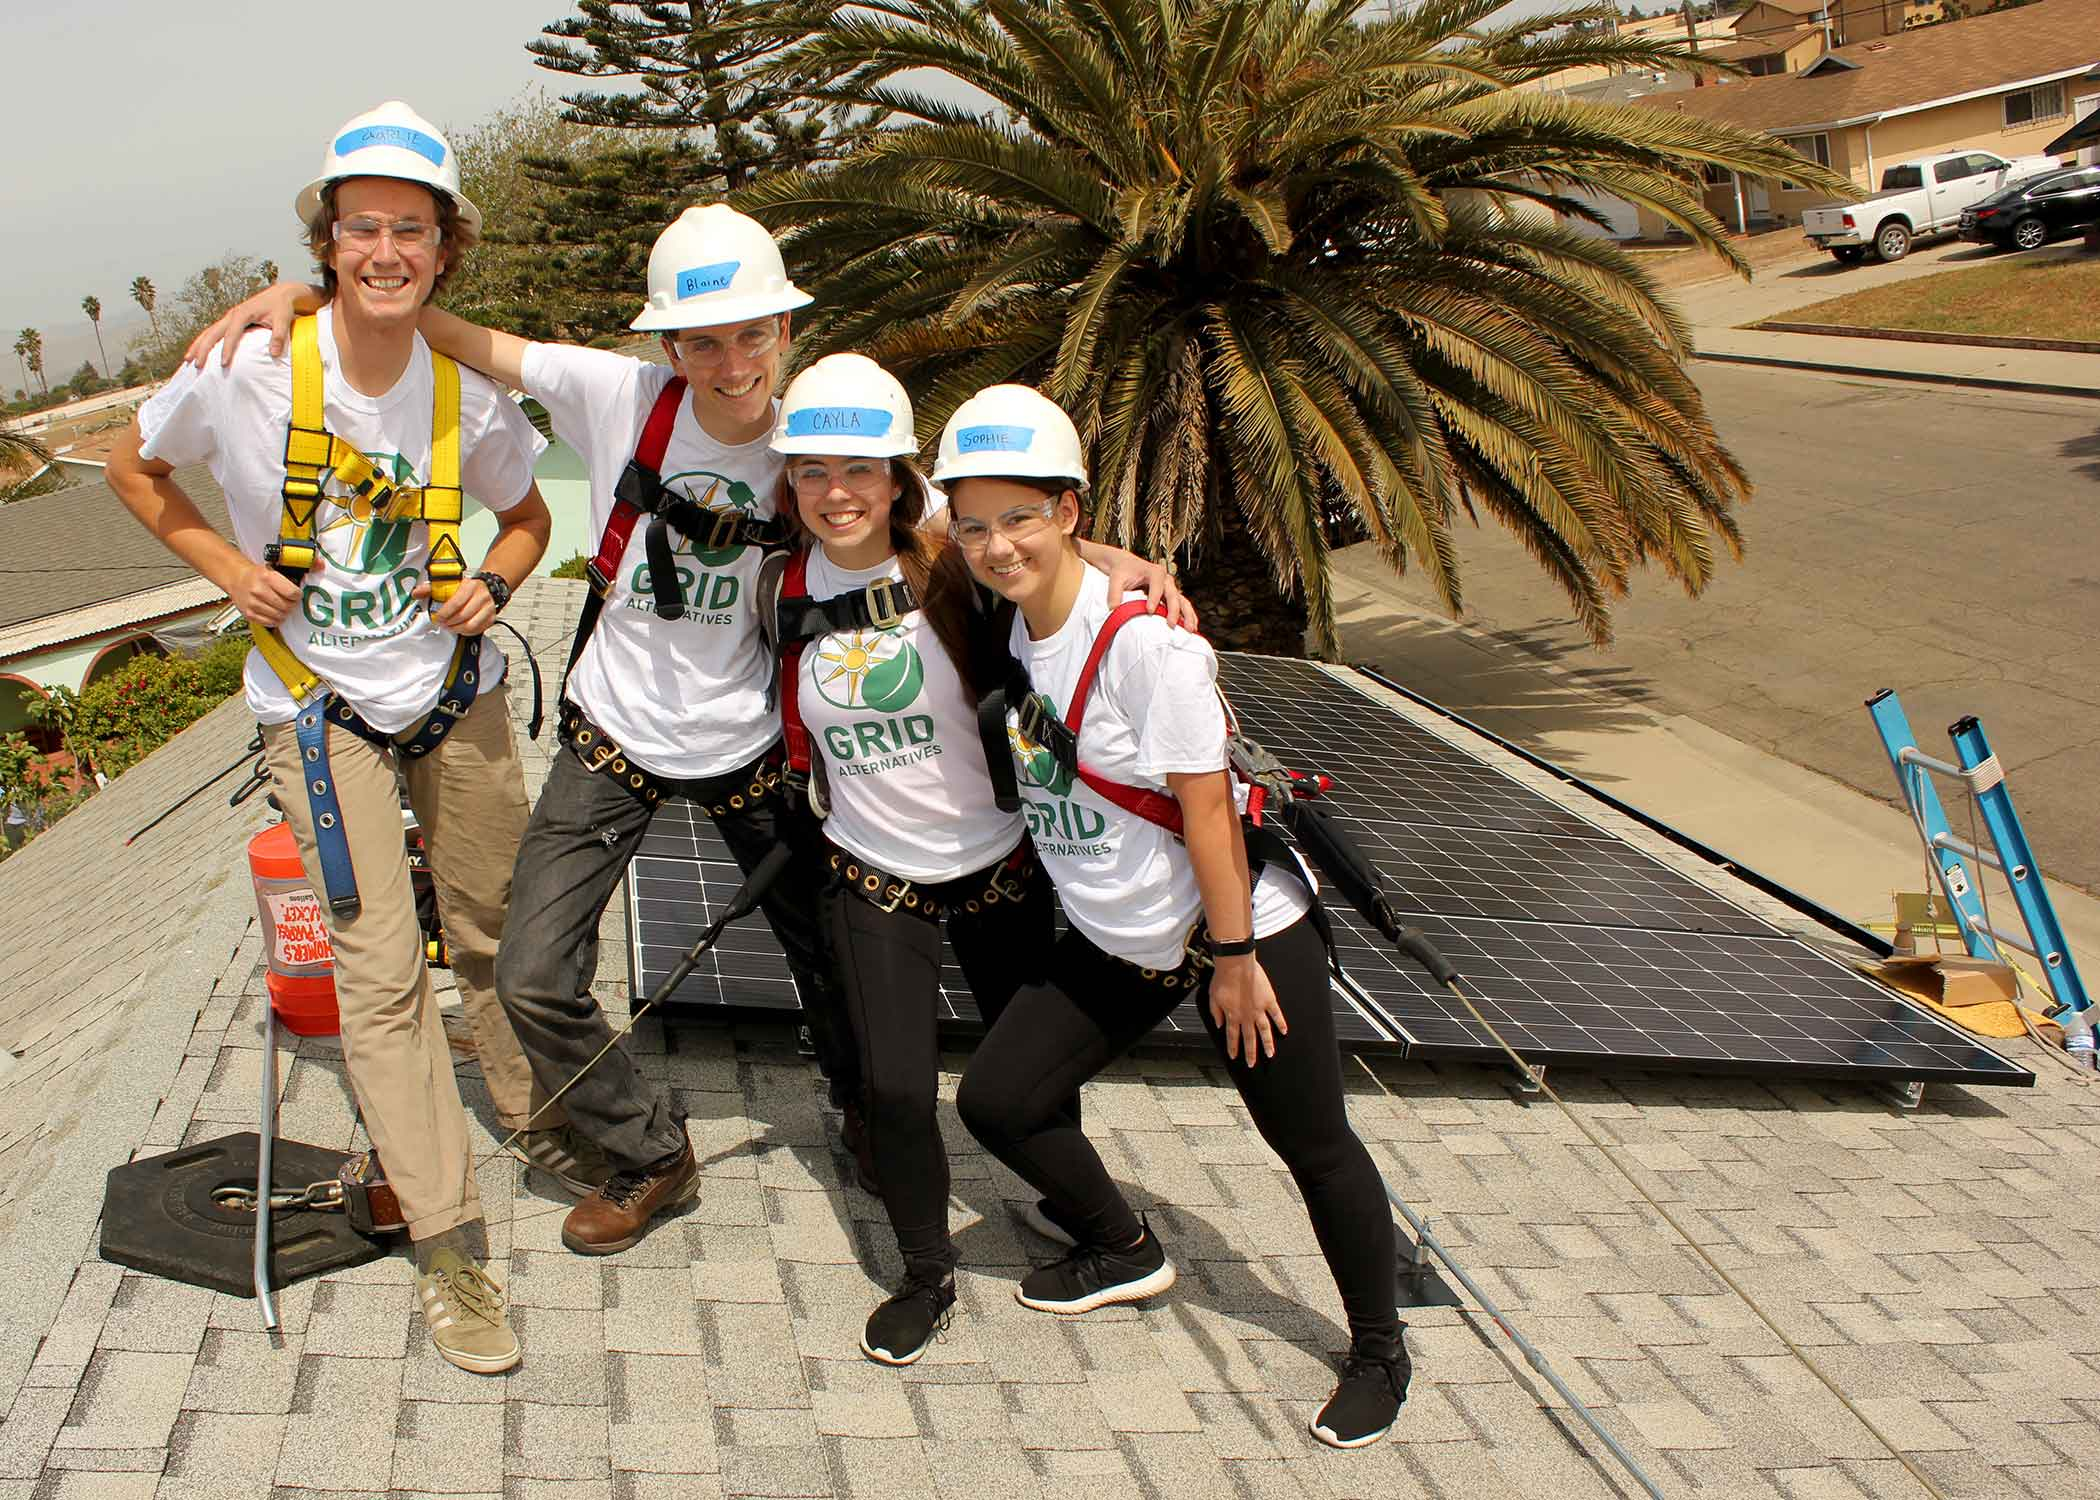 First-year Honors Program students, from left, Charlie Gibbons, a sophomore from Fountain Valley, Calif, who is majoring in environmental management and protections; Blaine Benham, a junior studying biology from San Diego; and mechanical engineering juniors Cayla Quinn of Walnut Creek, Calif., and Sophie Spencer of Phoenix work on a solar panel installation in Santa Maria. A team of six honors students (including those pictured) partnered with GRID Alternatives to create a solar energy jobs guidebook in support of their yearlong service project. Photo by Matthew Aoun, a project coordinator